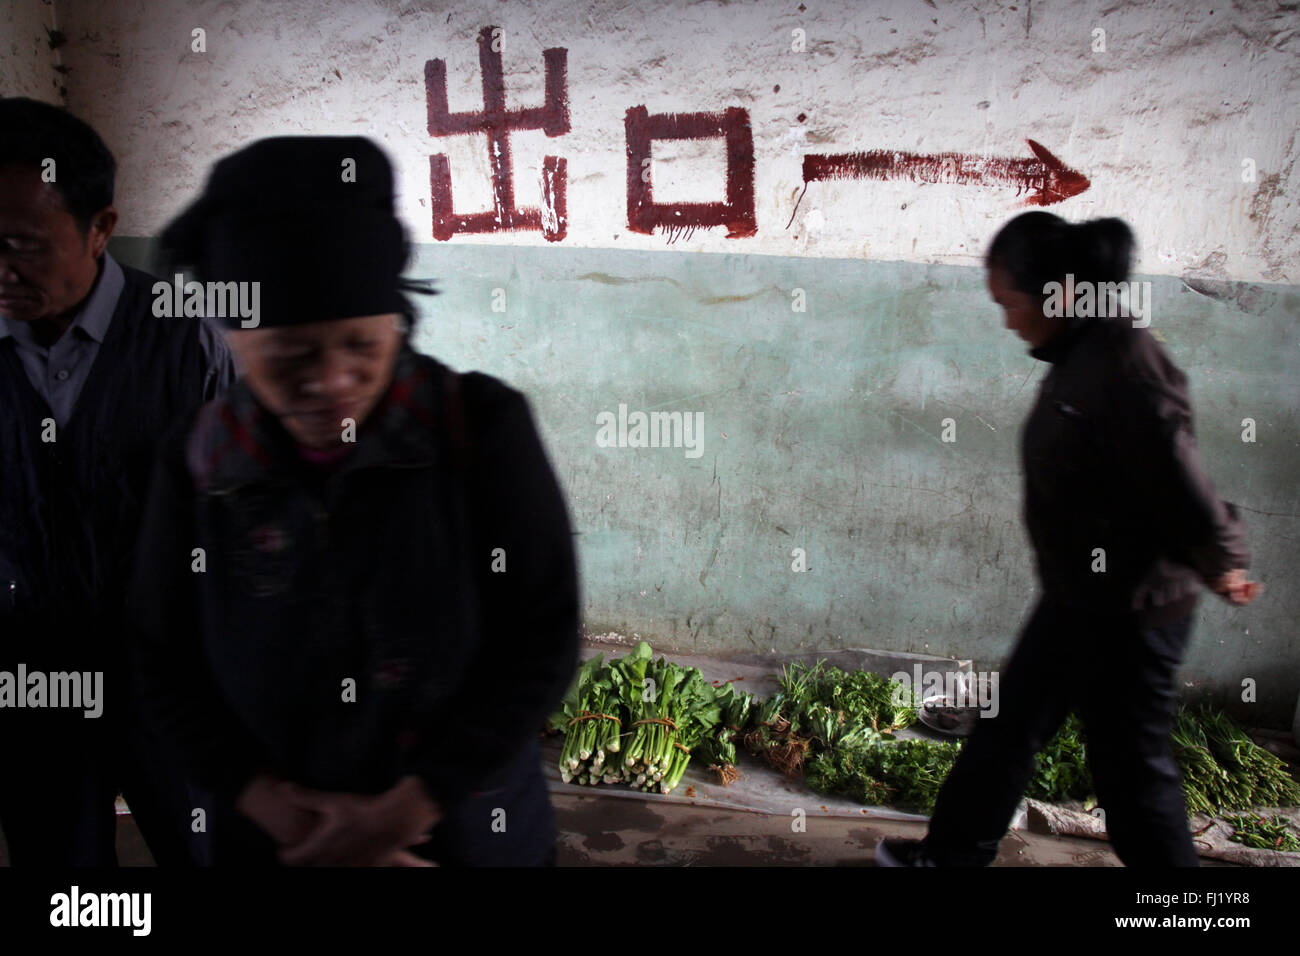 Women in Yuanyang market with arrow painted on a wall to show direction, Yuanyang, China - Stock Image